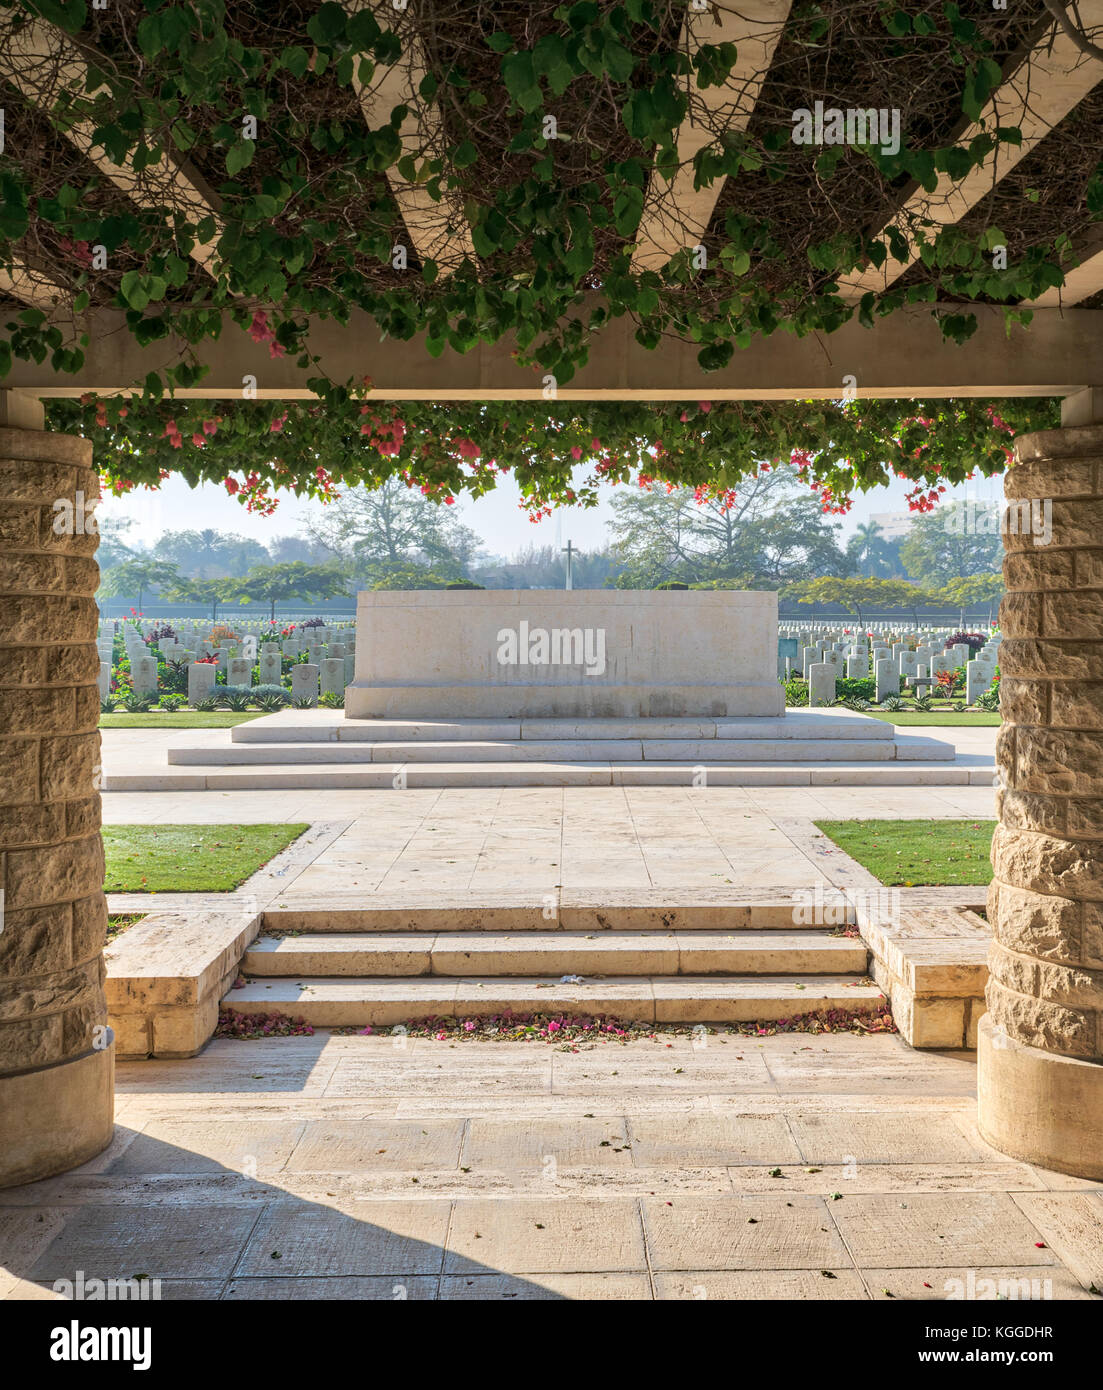 Entrance of Heliopolis Commonwealth War Cemetery with two stone bricks columns and climber green plants, Cairo, - Stock Image